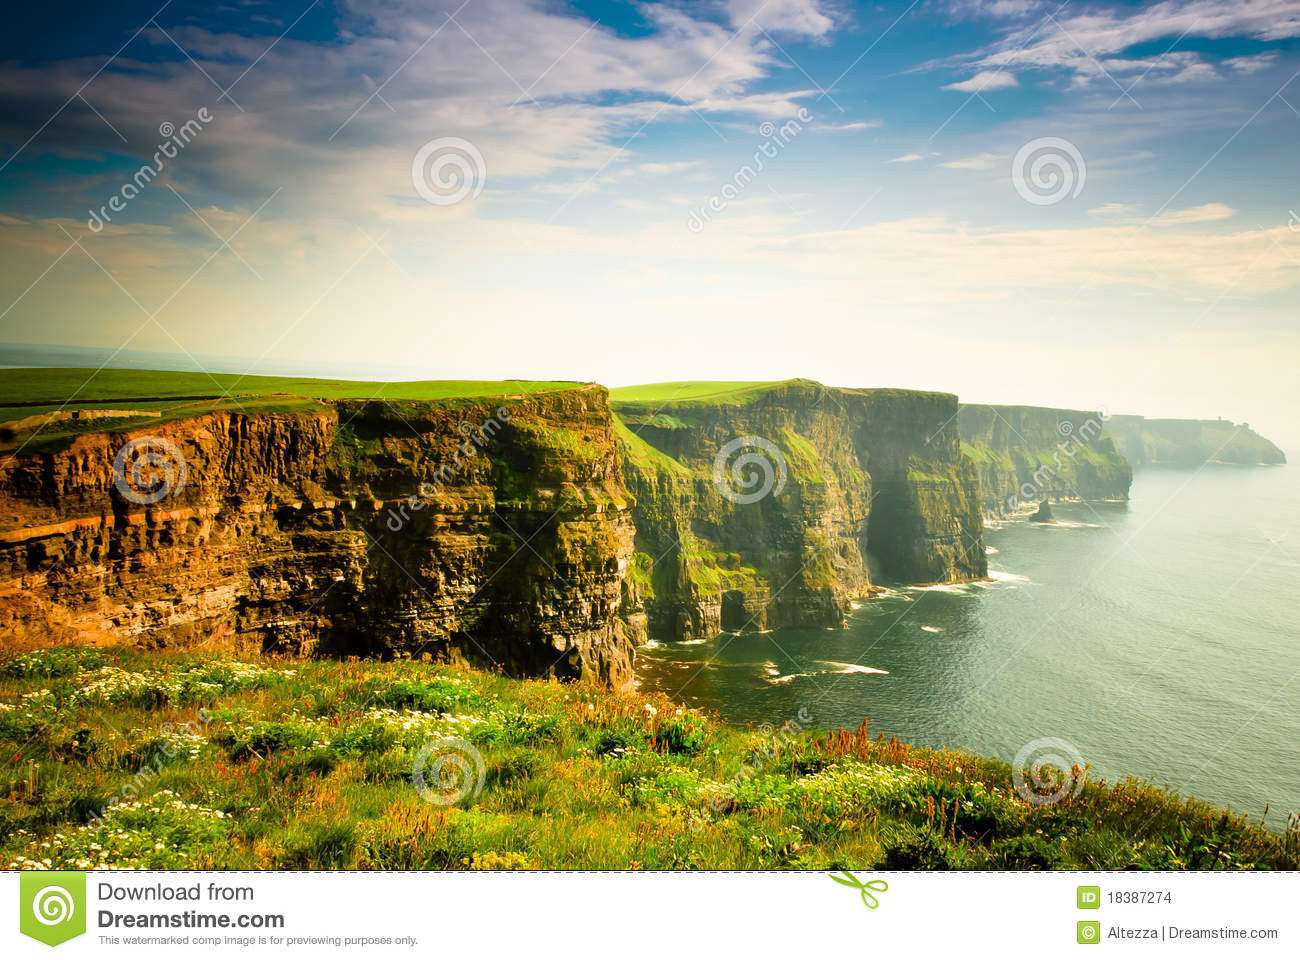 Cliffs Of Moher clipart #9, Download drawings